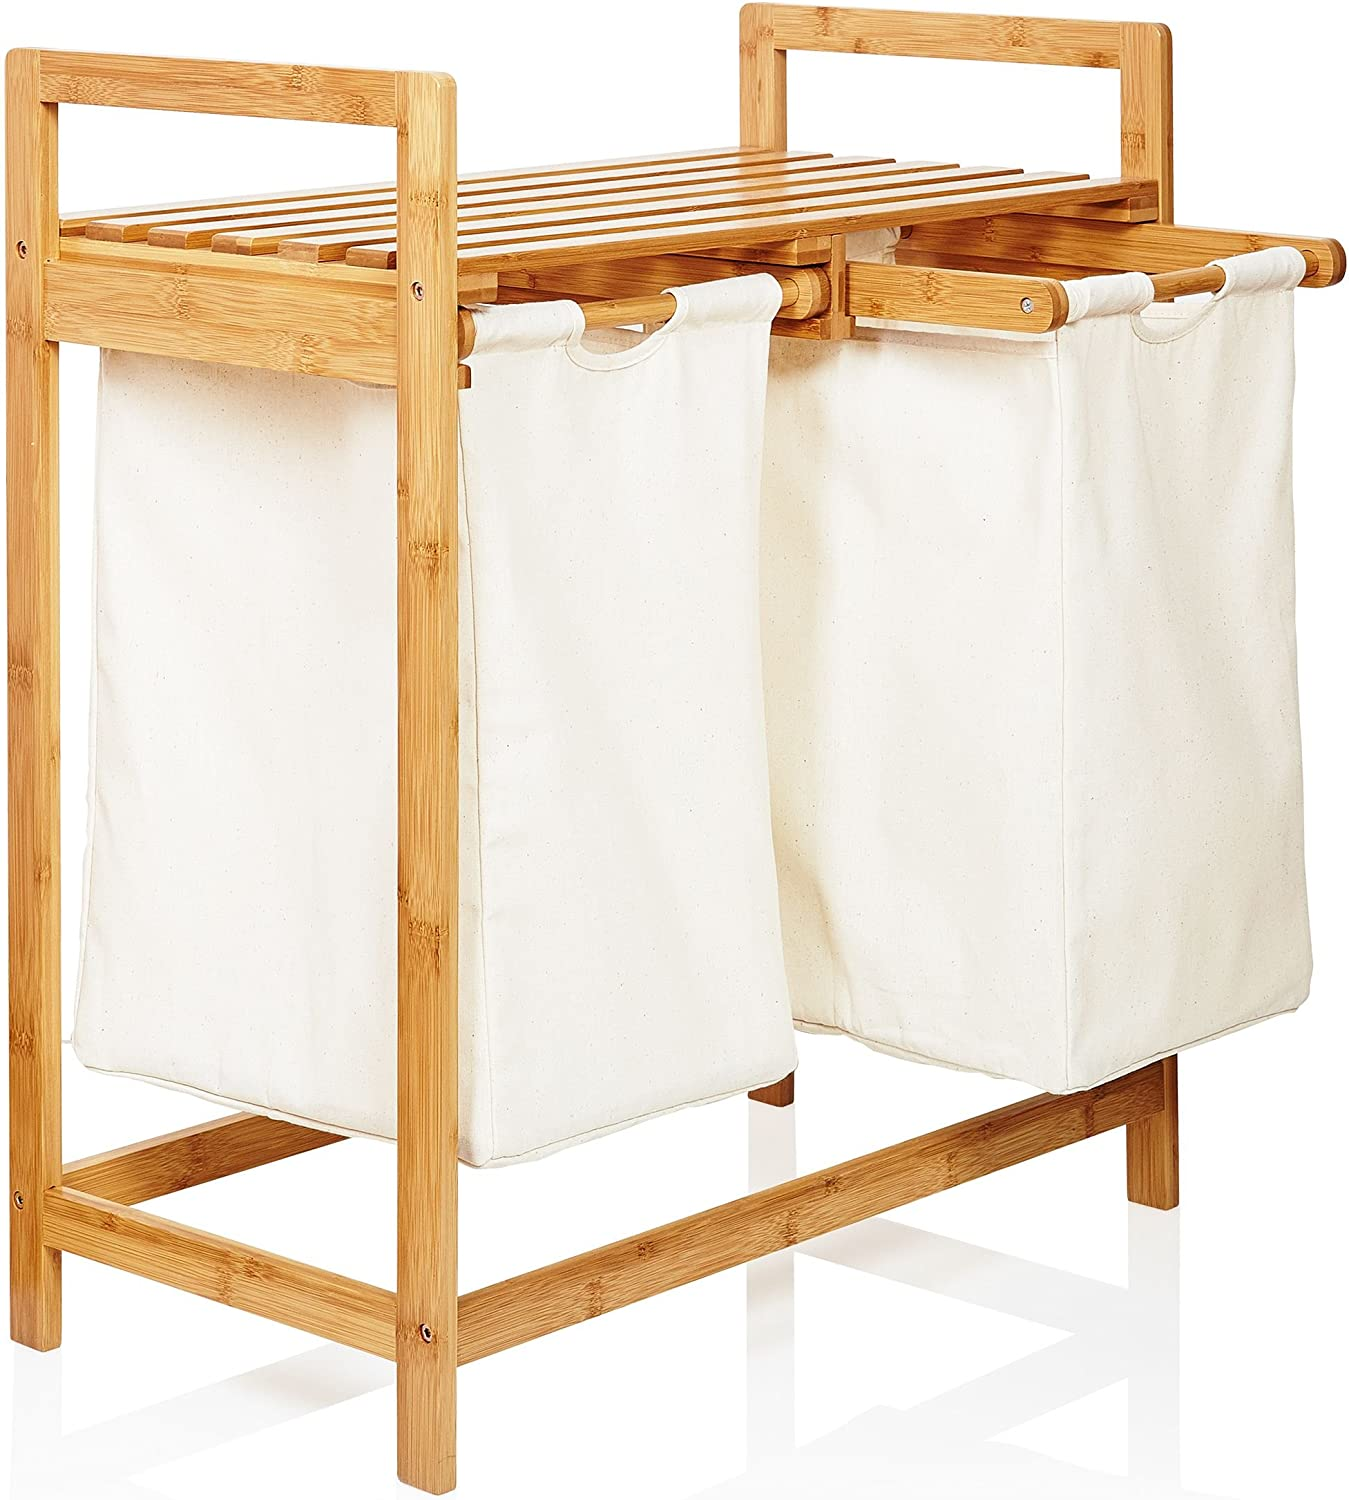 Lumaland Bamboo Laundry Basket with 2 Extendable Laundry Bags - 73 x 64 x 33 cm - Storage Organizer Box Hamper Basket - 2X Pull-Out Compartments - Portable - Beige